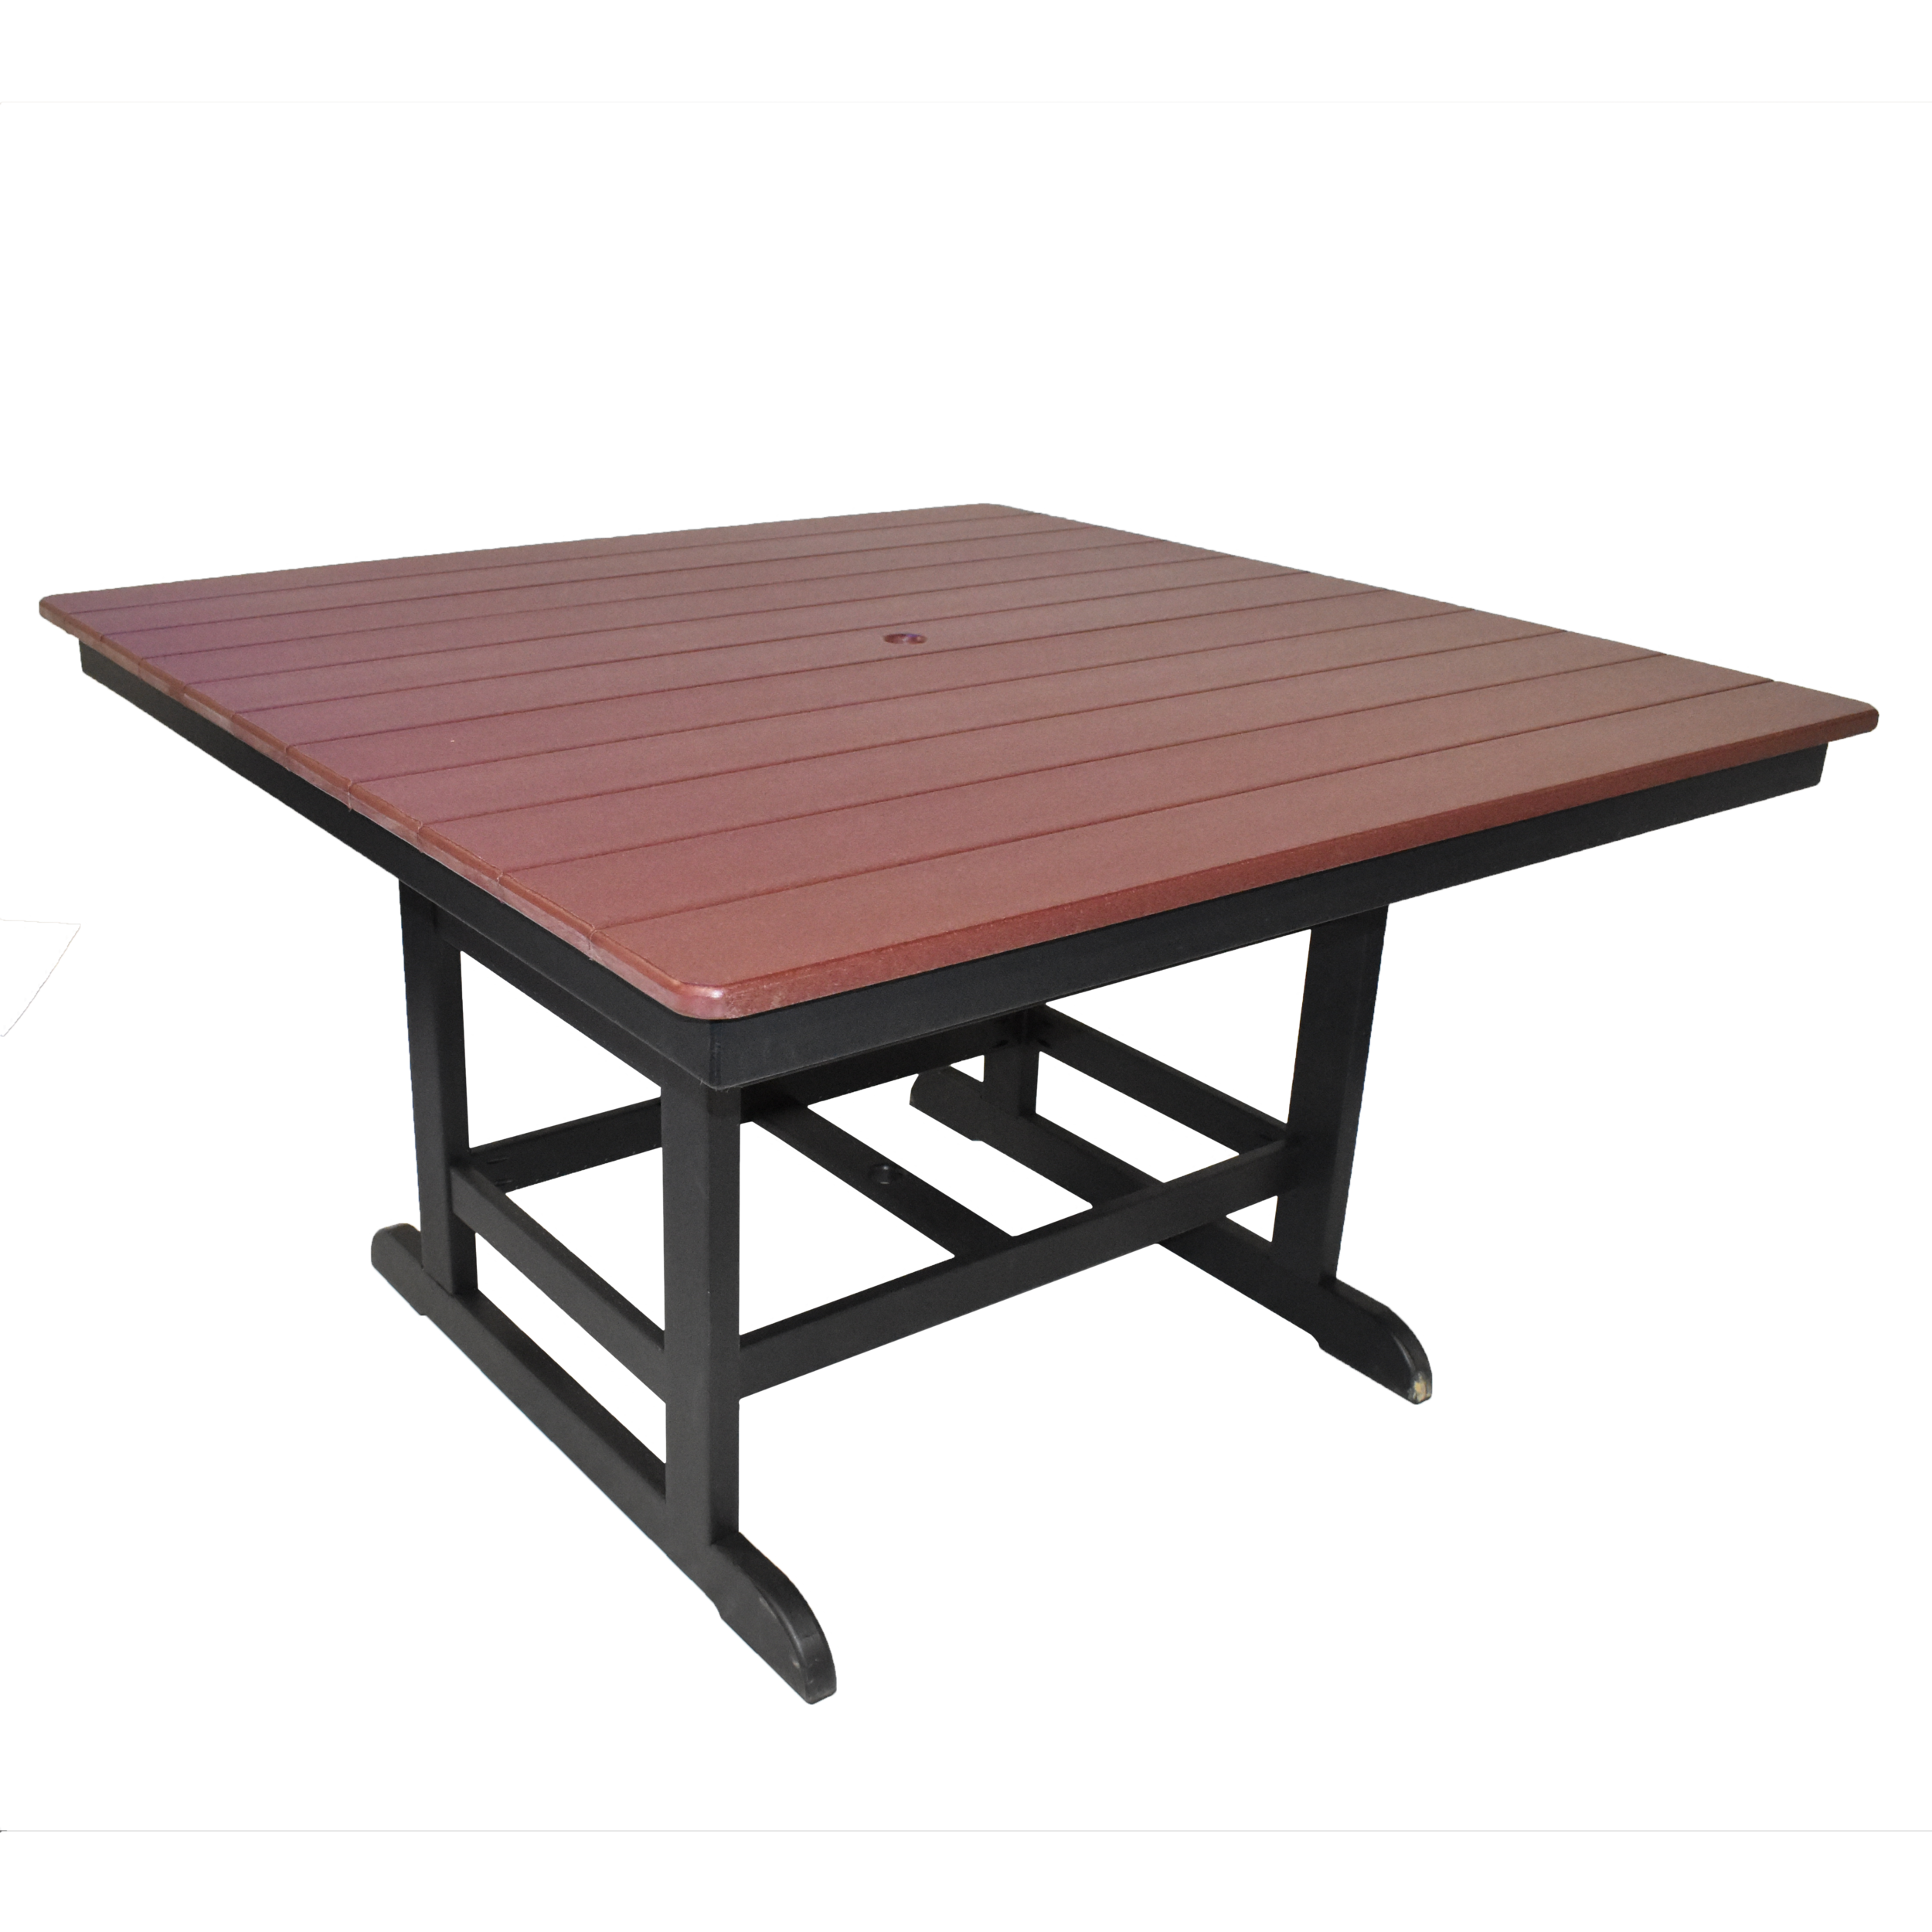 60x60 Cafe Table